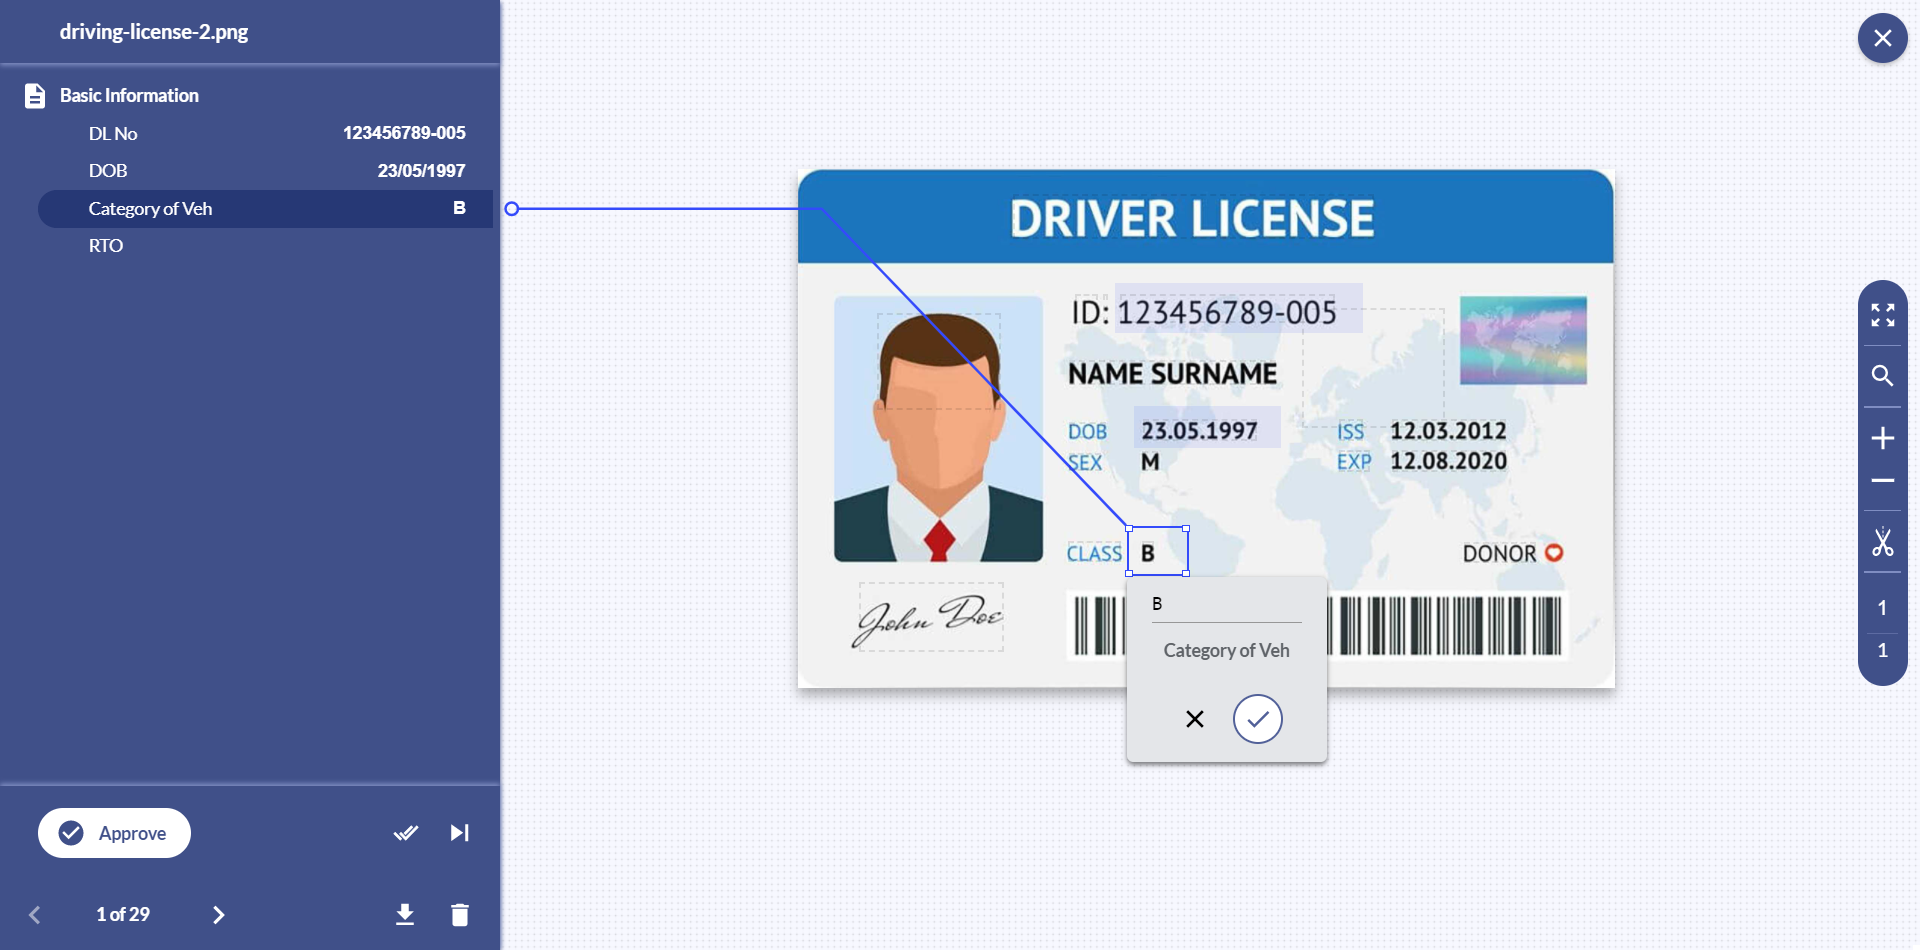 With Docsumo, you can scan driving license or extract data from images in real-time. Let's take a look at how Docsumo makes it easier for you.